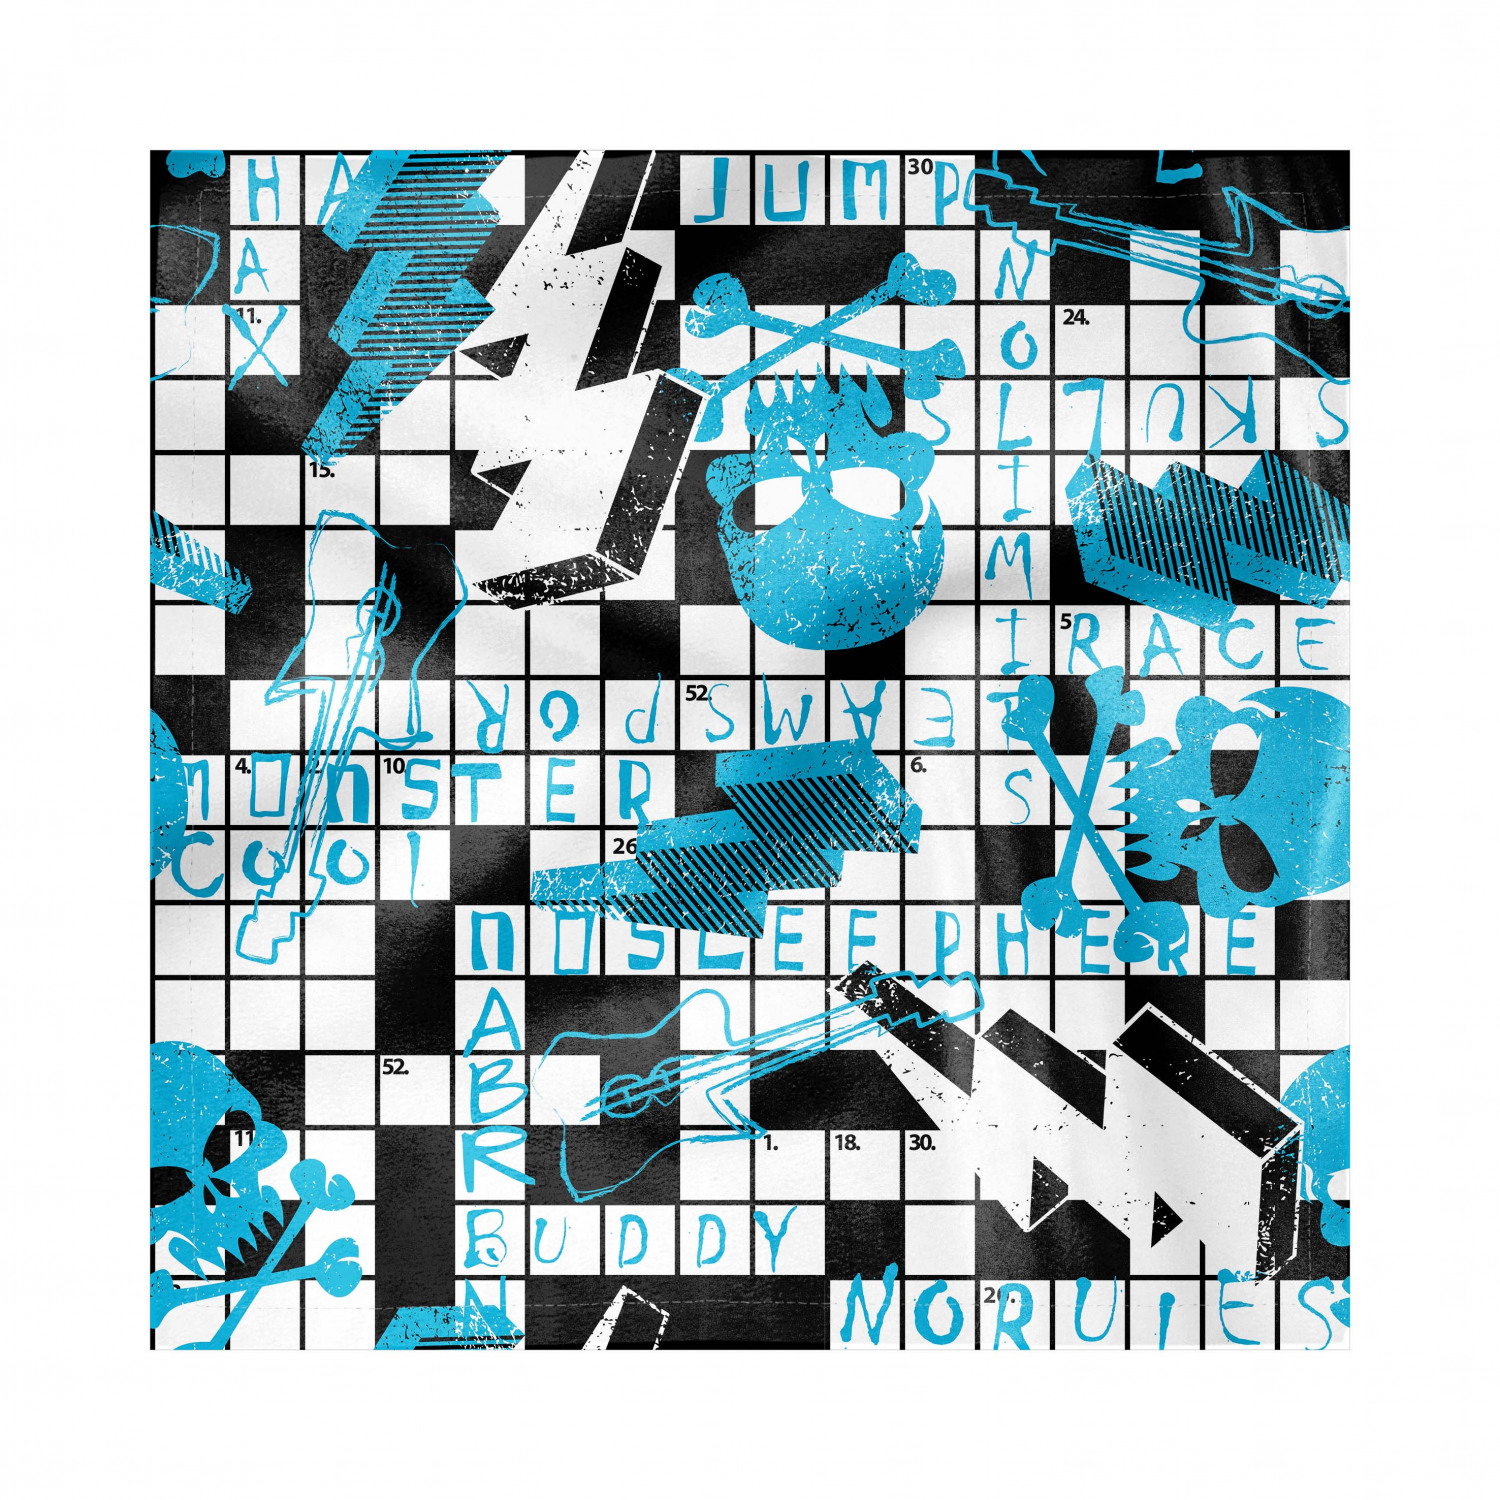 Retro Decorative Napkins Set Of 4 Crossword Puzzle Theme With Skulls Thunder Bolts Grunge Style Illustration Silky Satin Fabric For Brunch Dinner Party 18 Blue Black And White By Ambesonne Walmart Com